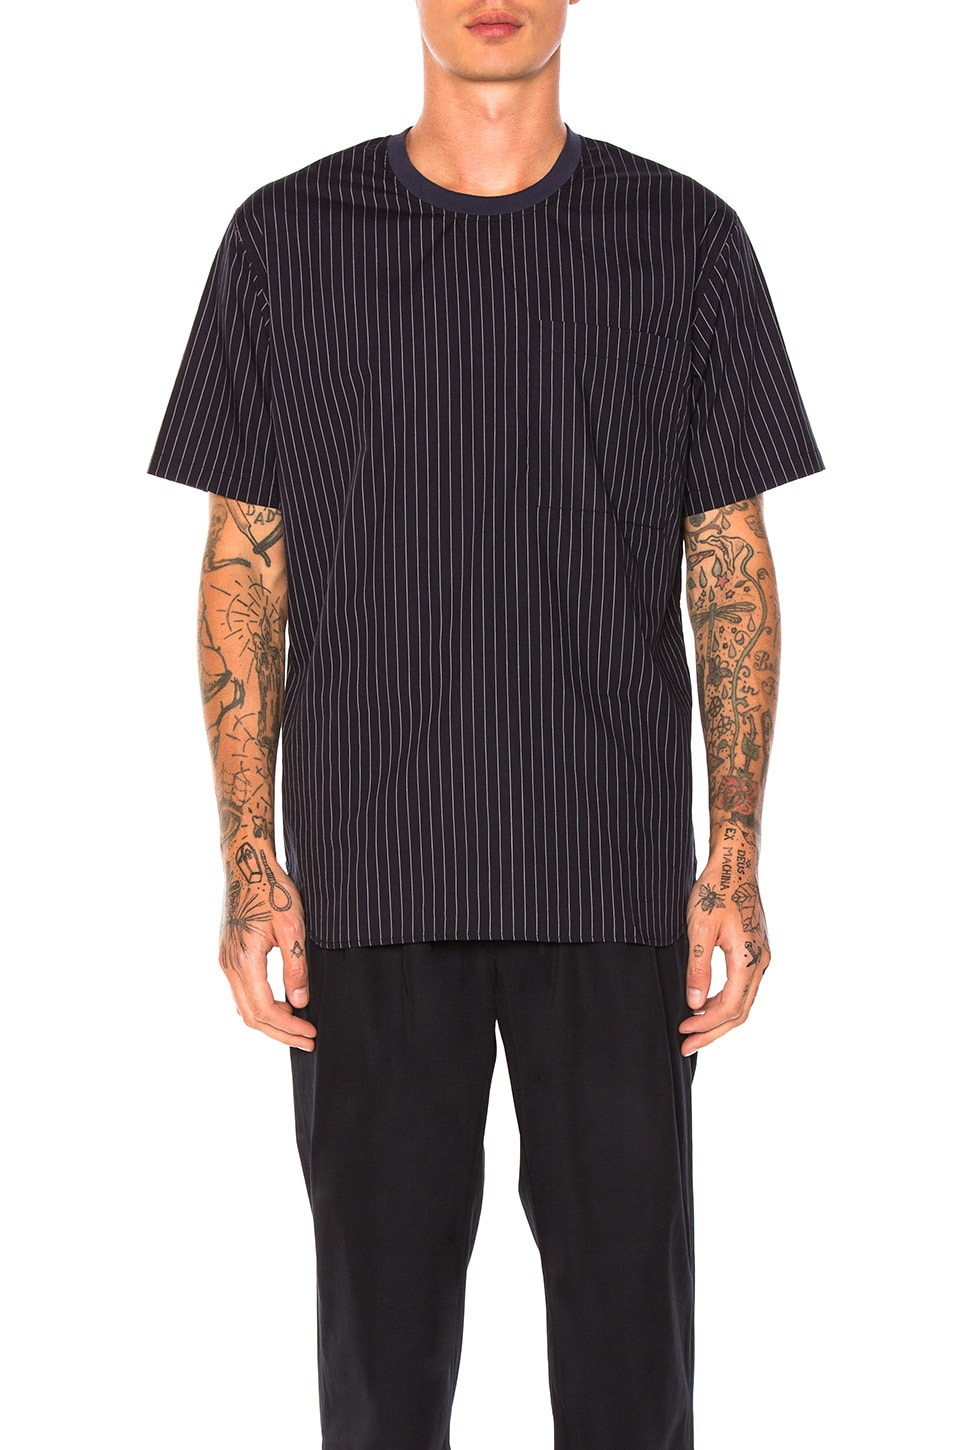 Stripe Crew Shirt by Maiden Noir